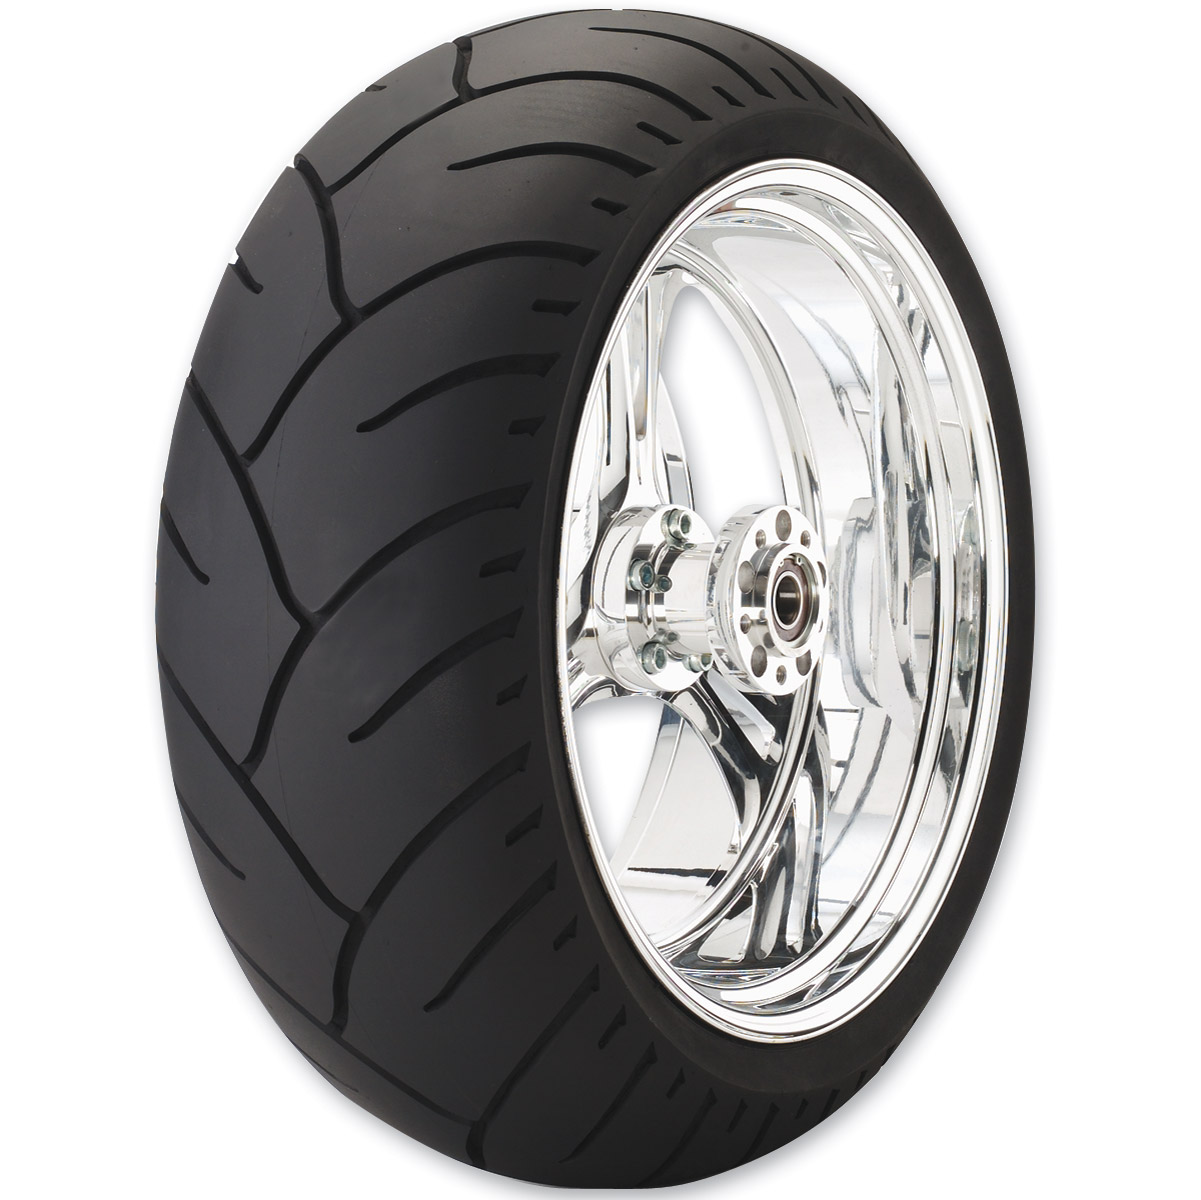 dunlop elite 3 240 40r18 rear tire 45091919 jpcycles com